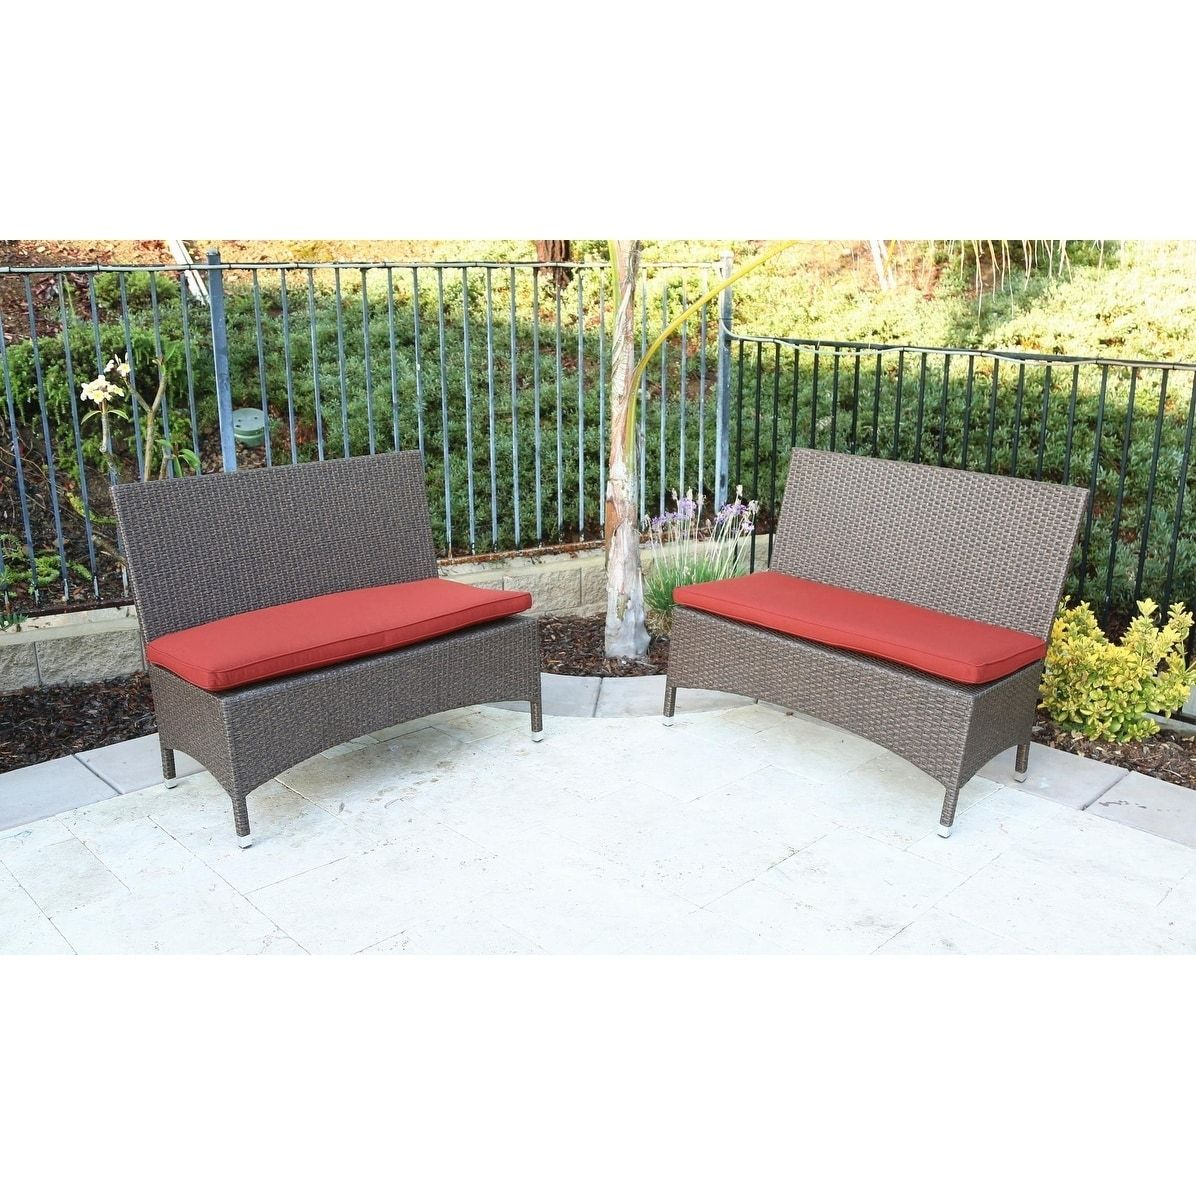 Catalina 2 Piece Bench With Cushion Brown Patio Furniture  # Muebles Johnson Rosario